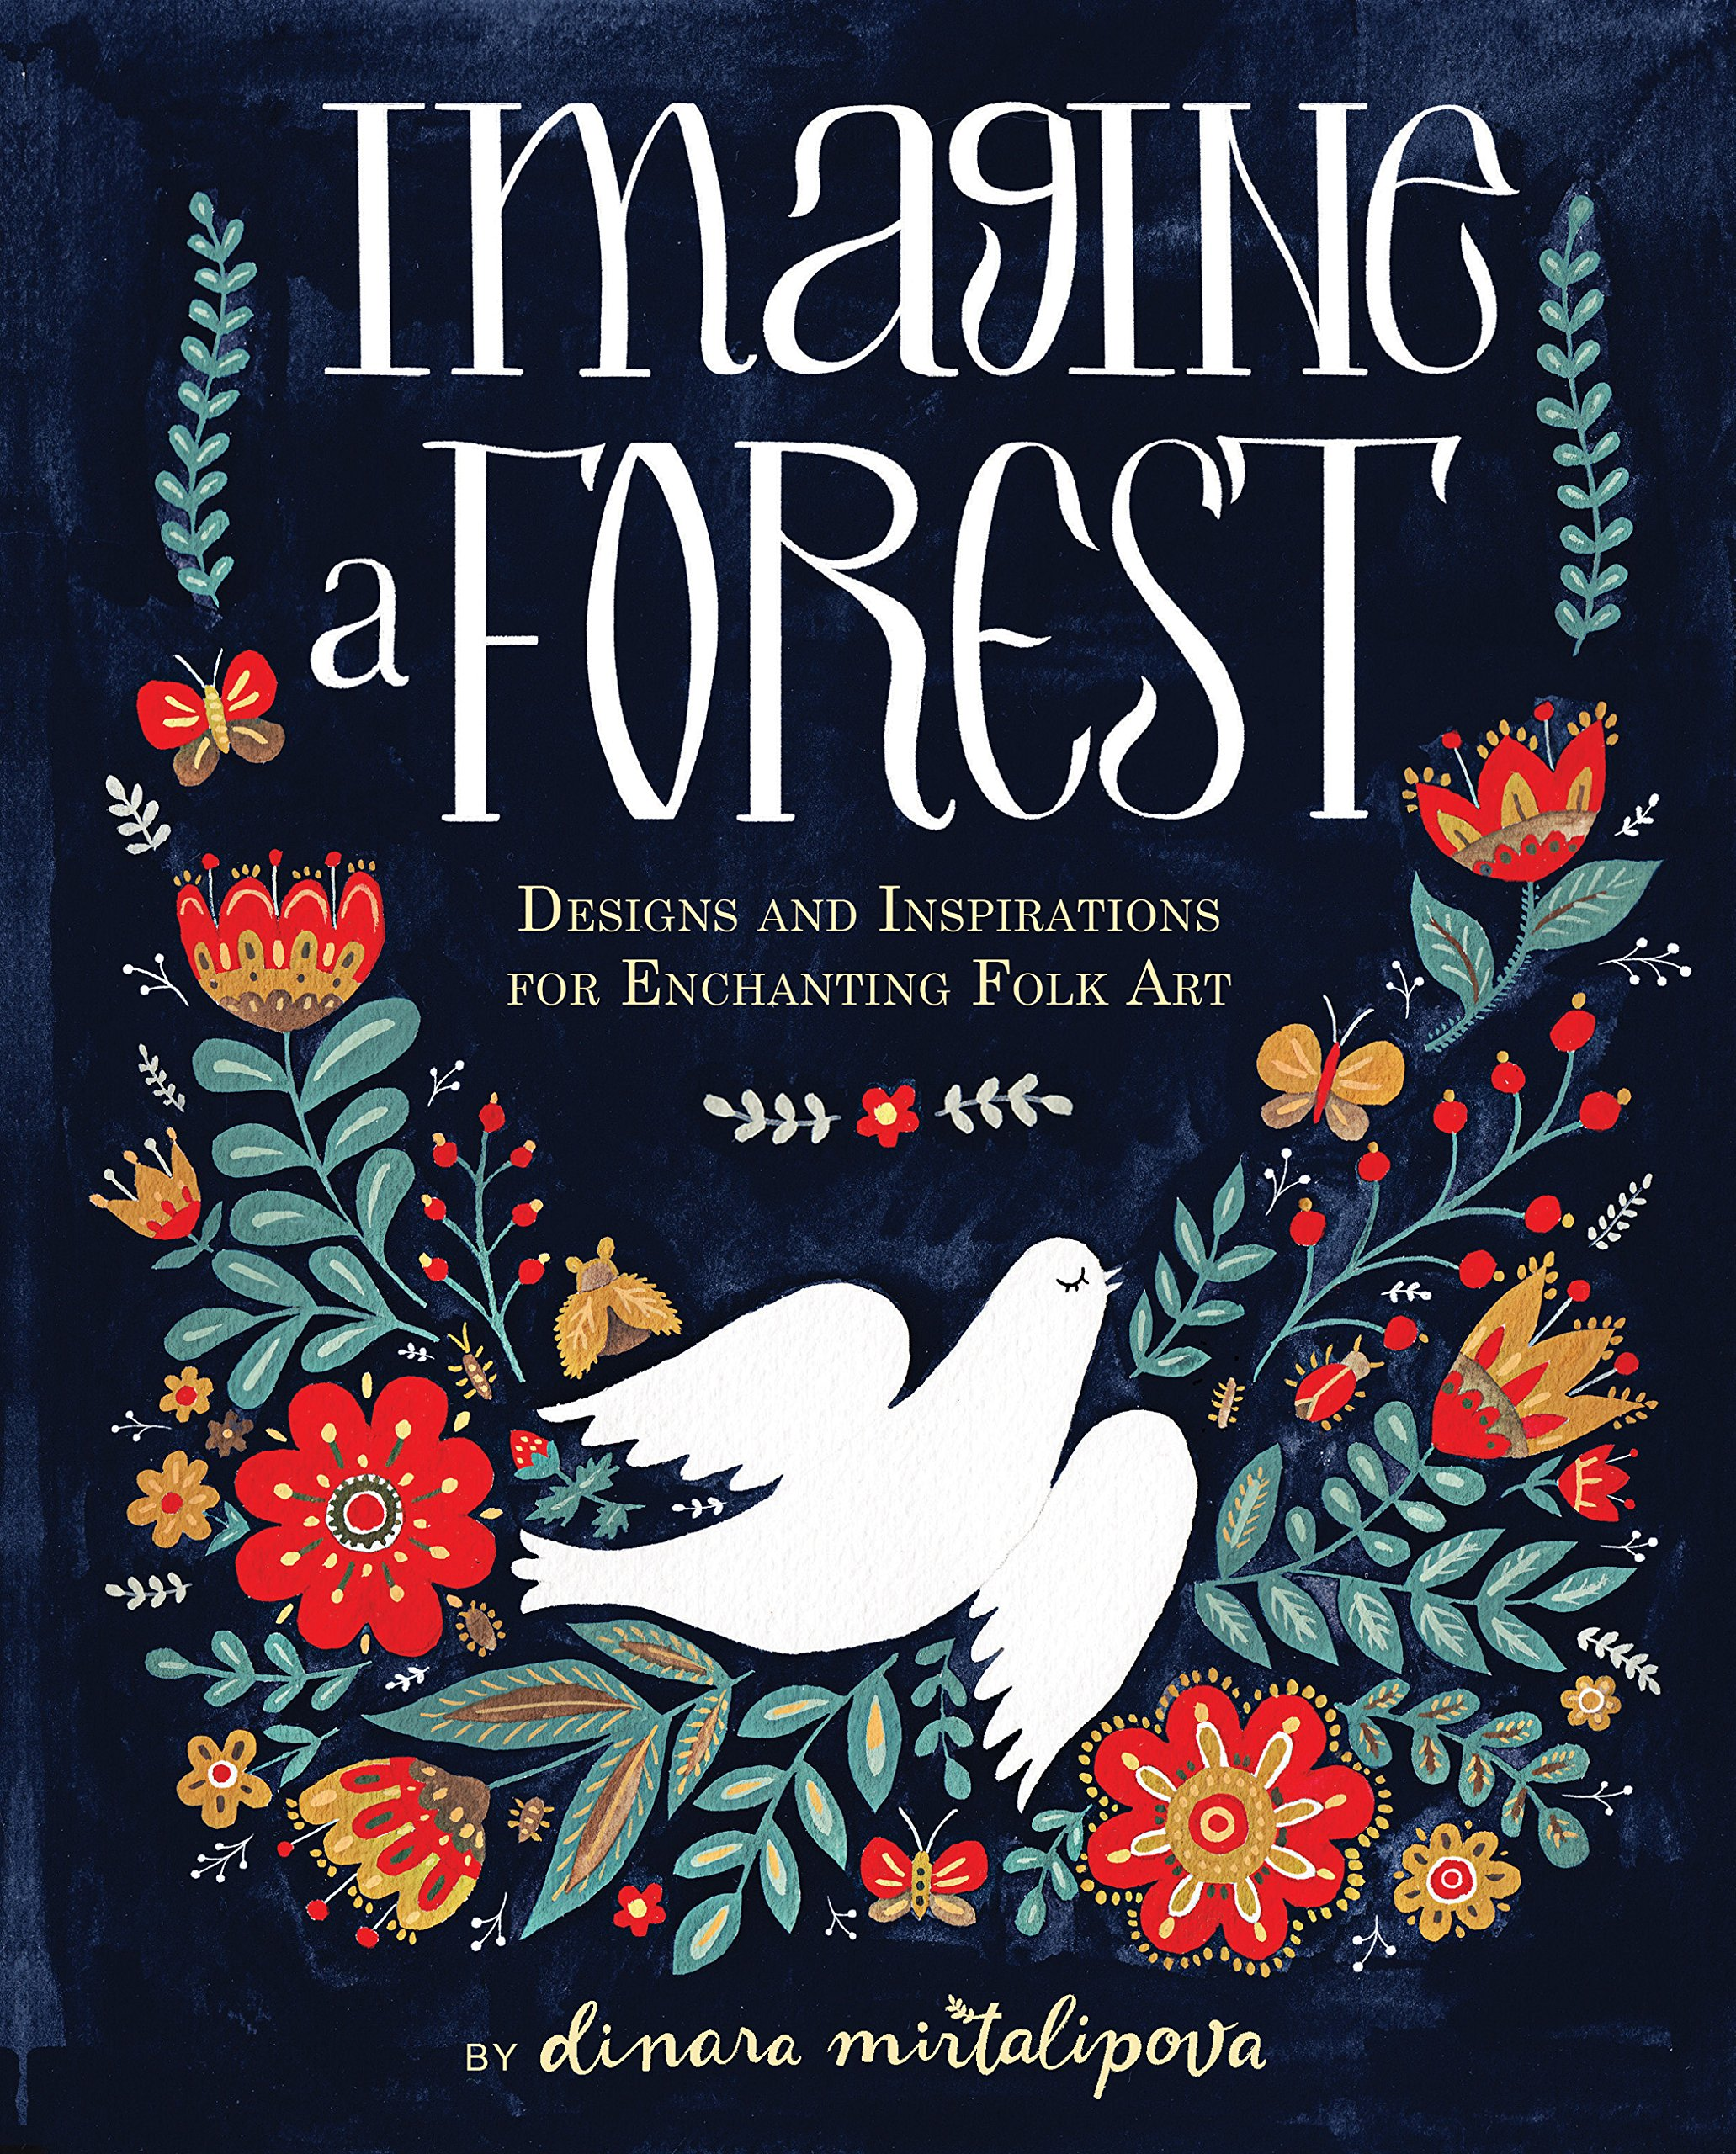 Imagine a Forest Designs and Inspirations for Enchanting Folk Art